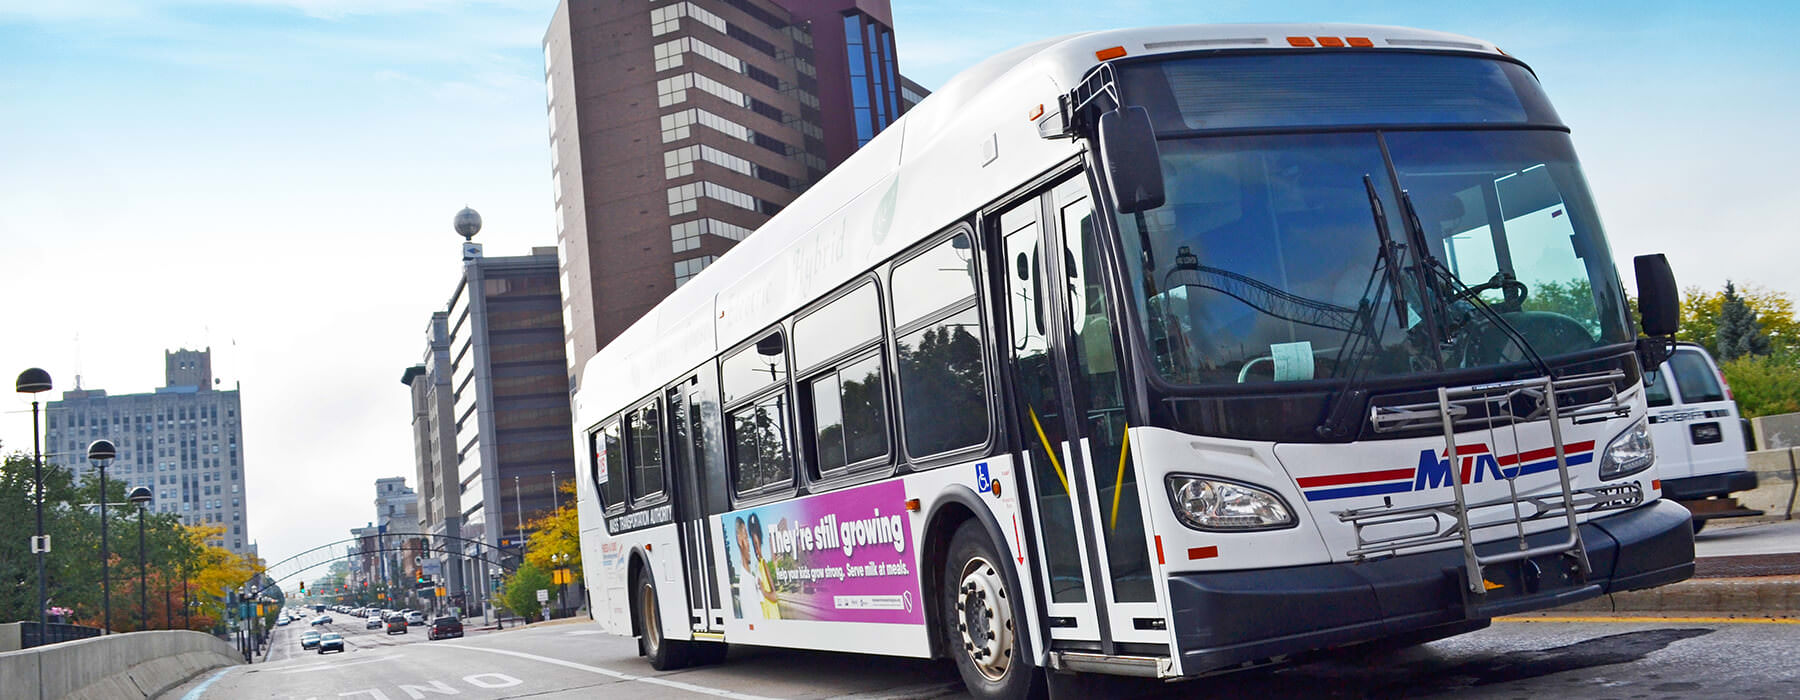 MTA Primary Route bus on Saginaw Street downtown Flint.